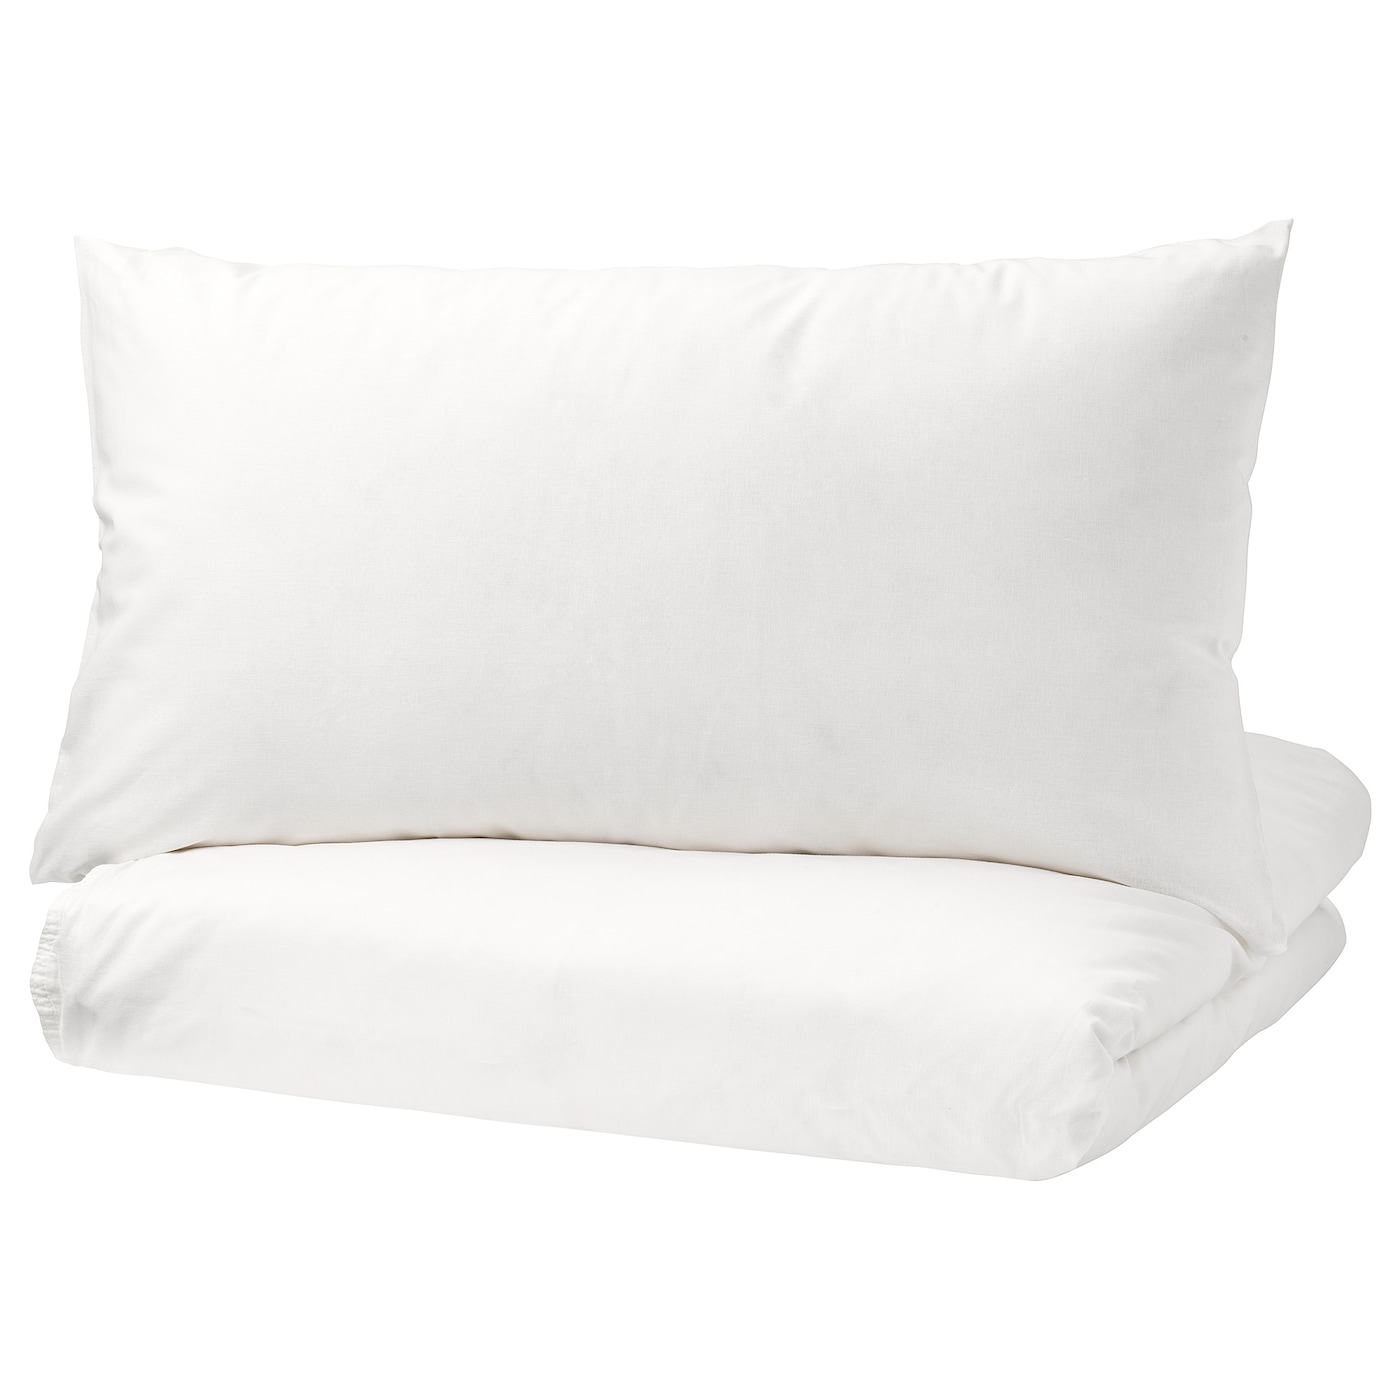 IKEA ÄNGSLILJA quilt cover and 2 pillowcases Pure cotton that feels soft and nice against your skin.